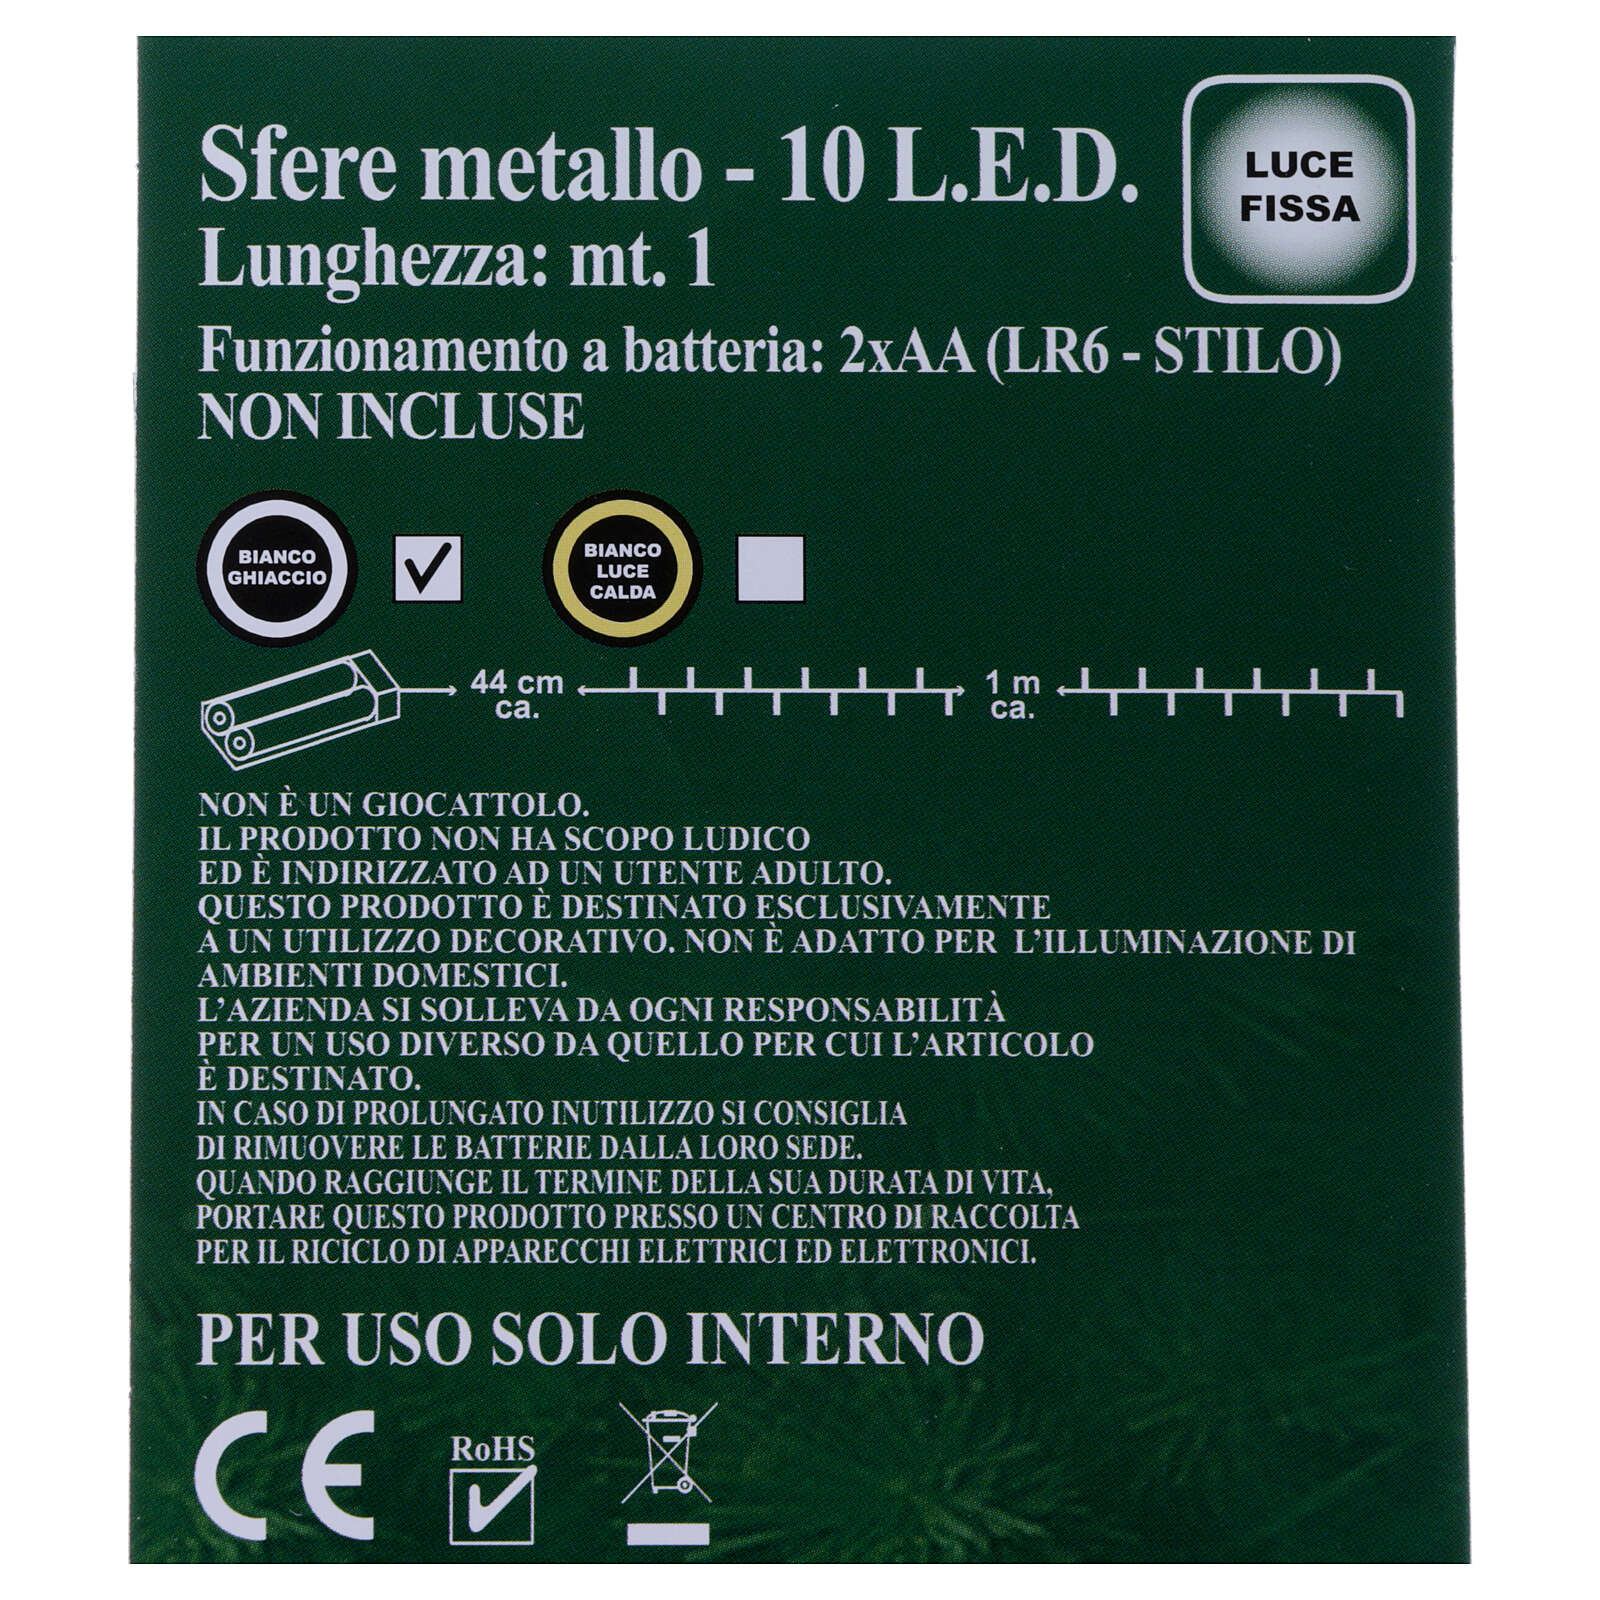 Luces Esferas ovillo metal 10 led Blanco hielo uso interno 3